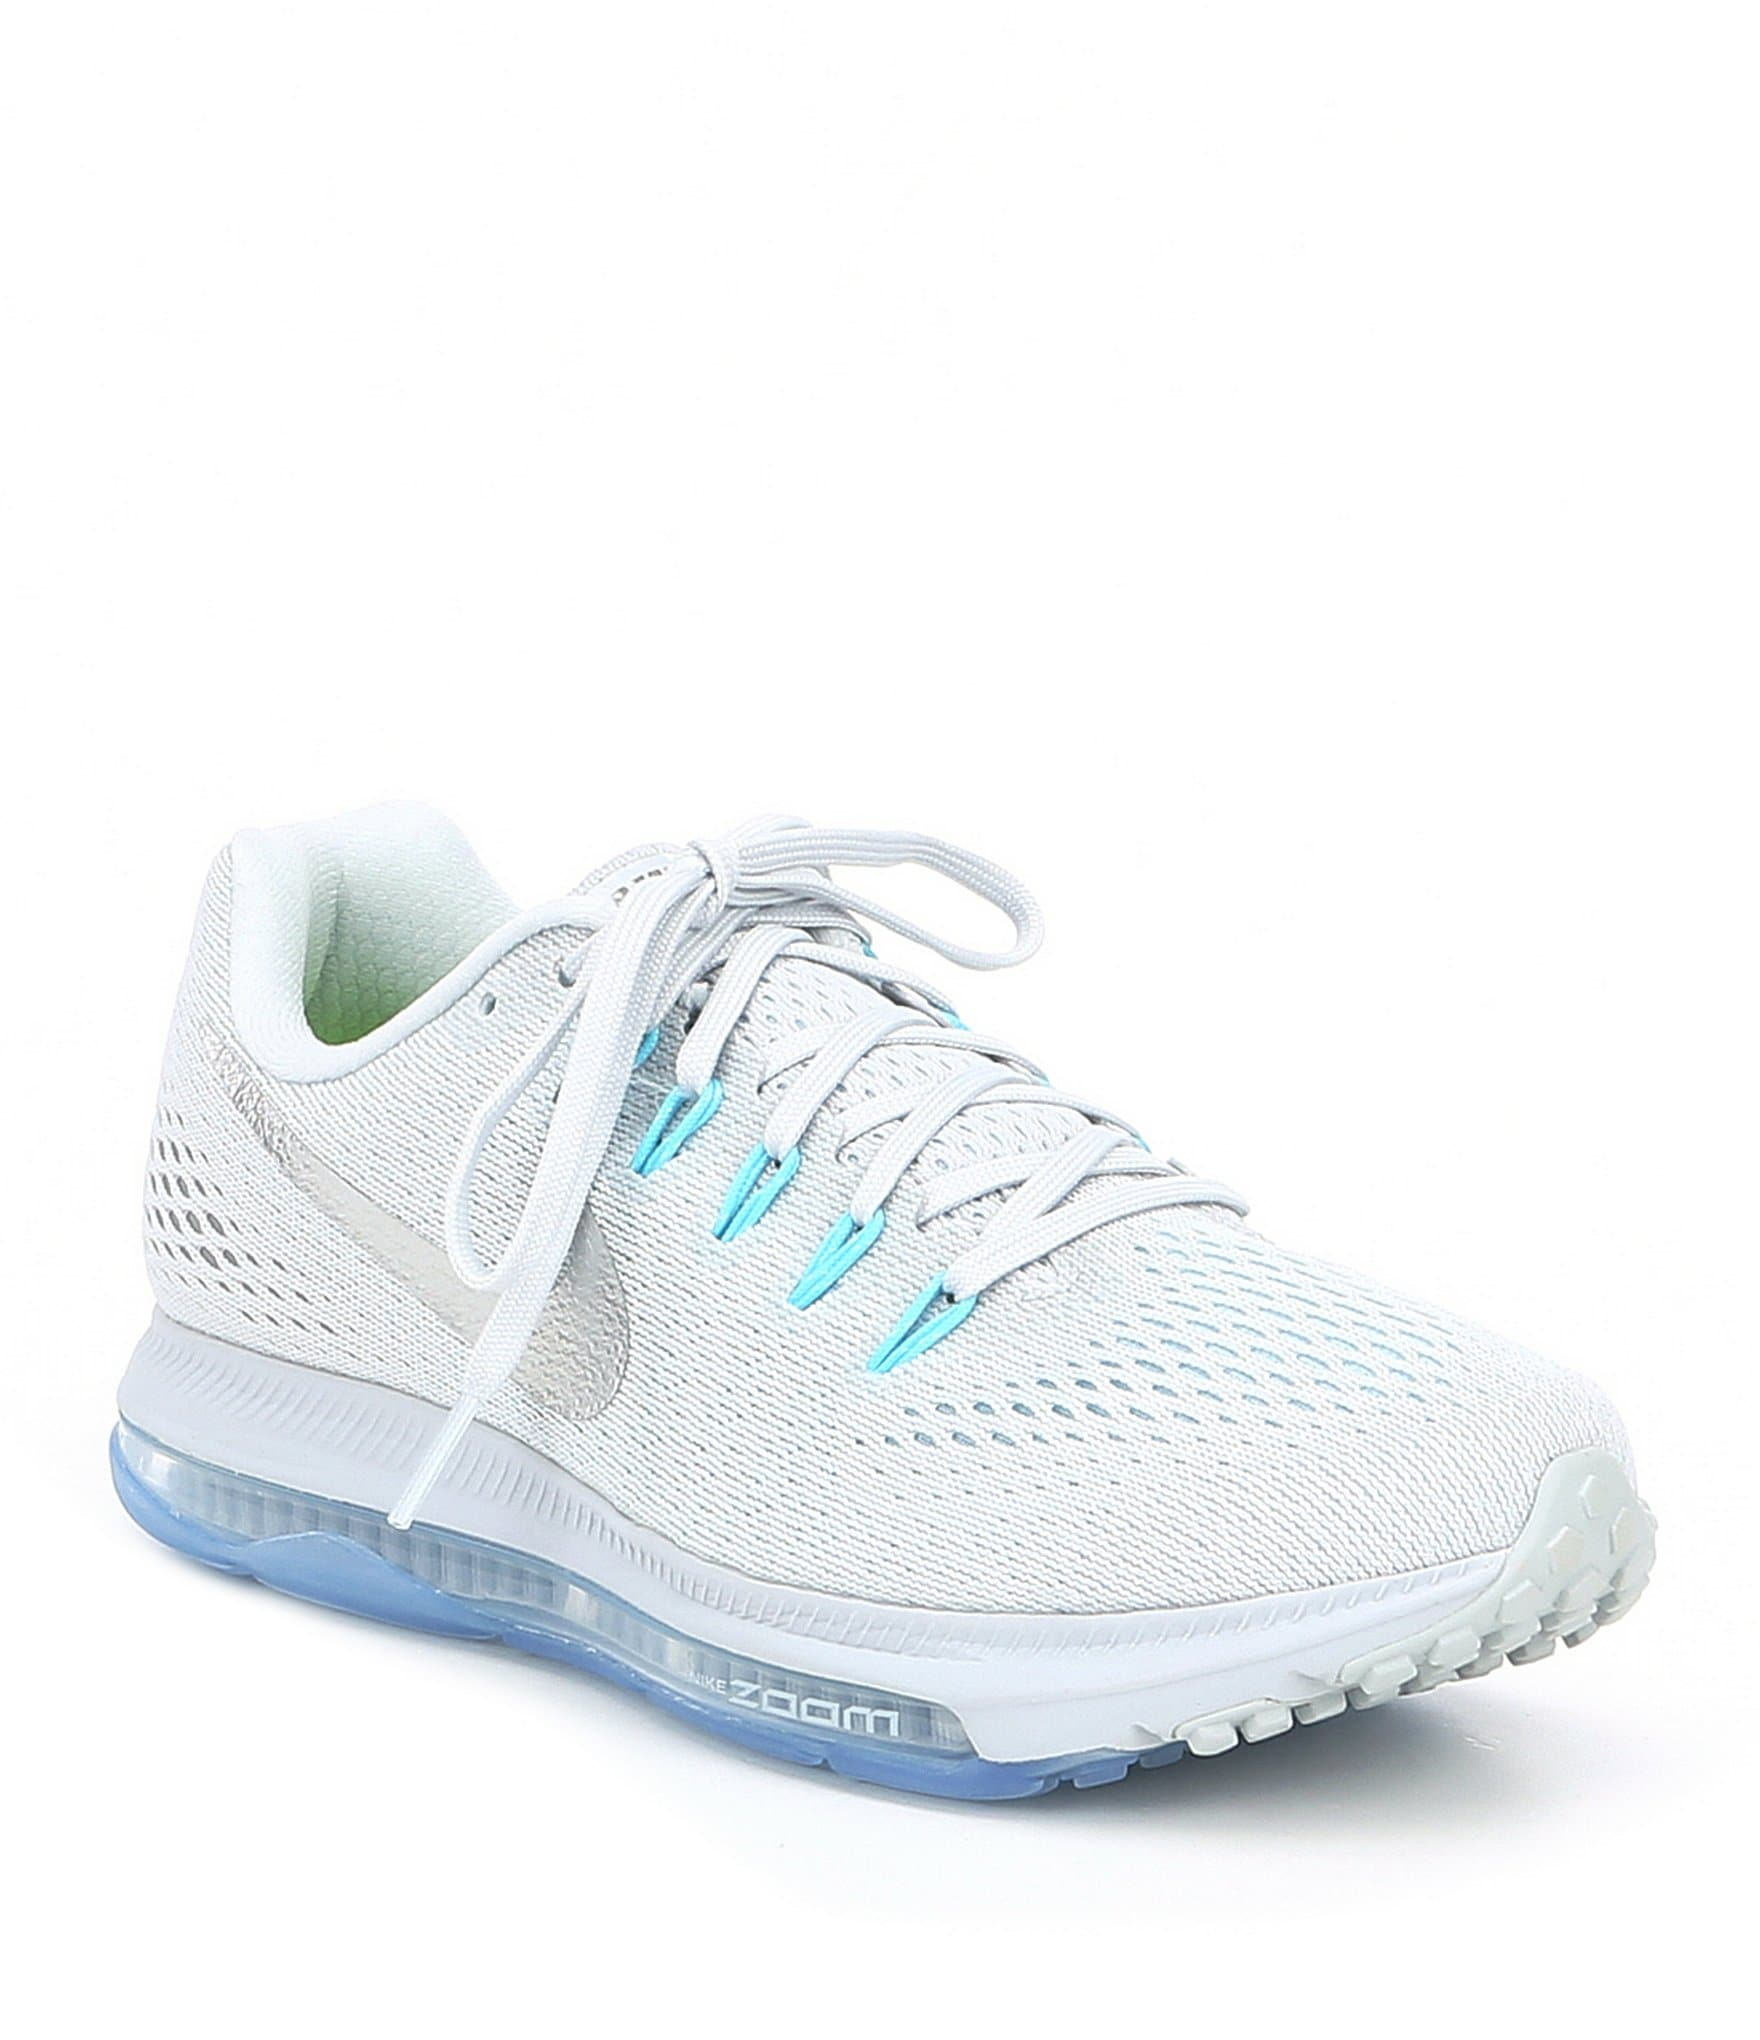 Nordstrom Nike Womens Tennis Shoes